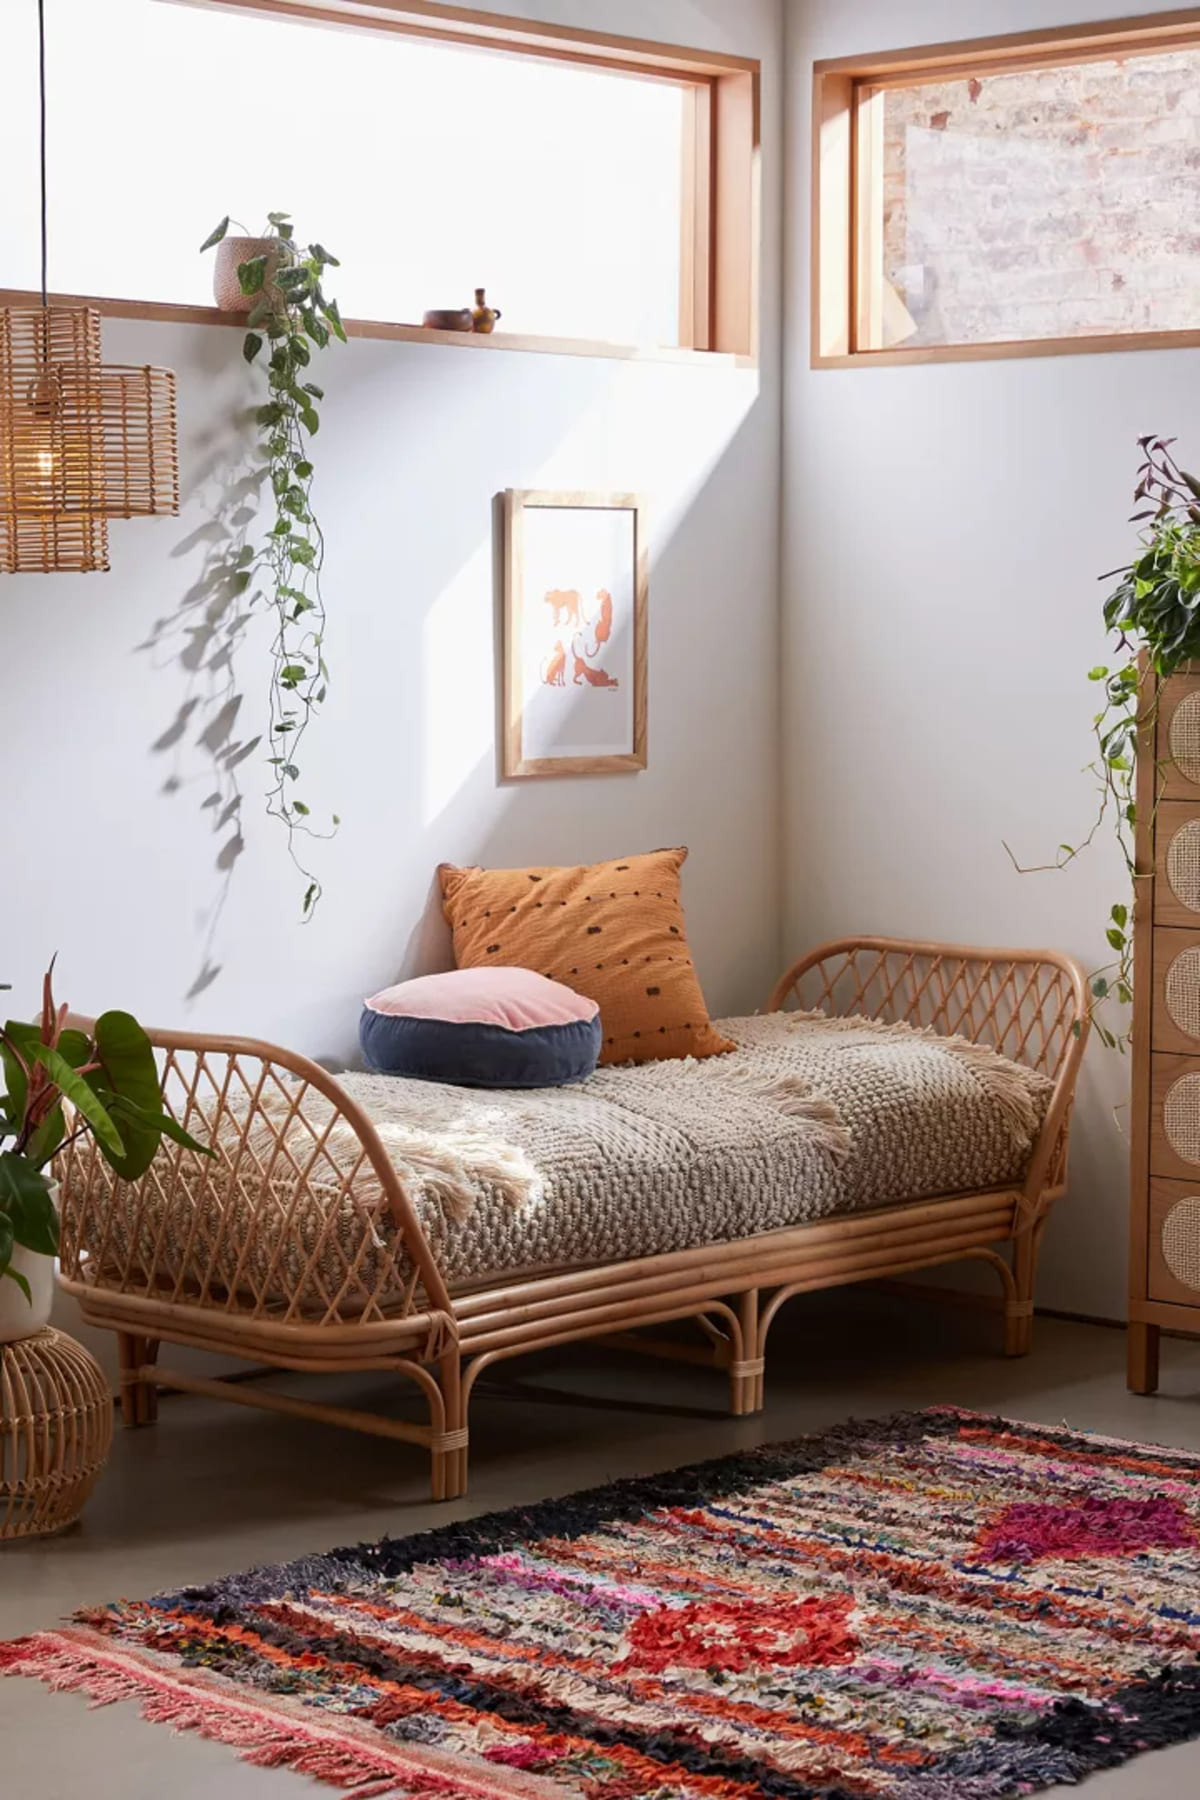 daybed 8 - 20 delightful daybeds that easily convert into comfortable beds